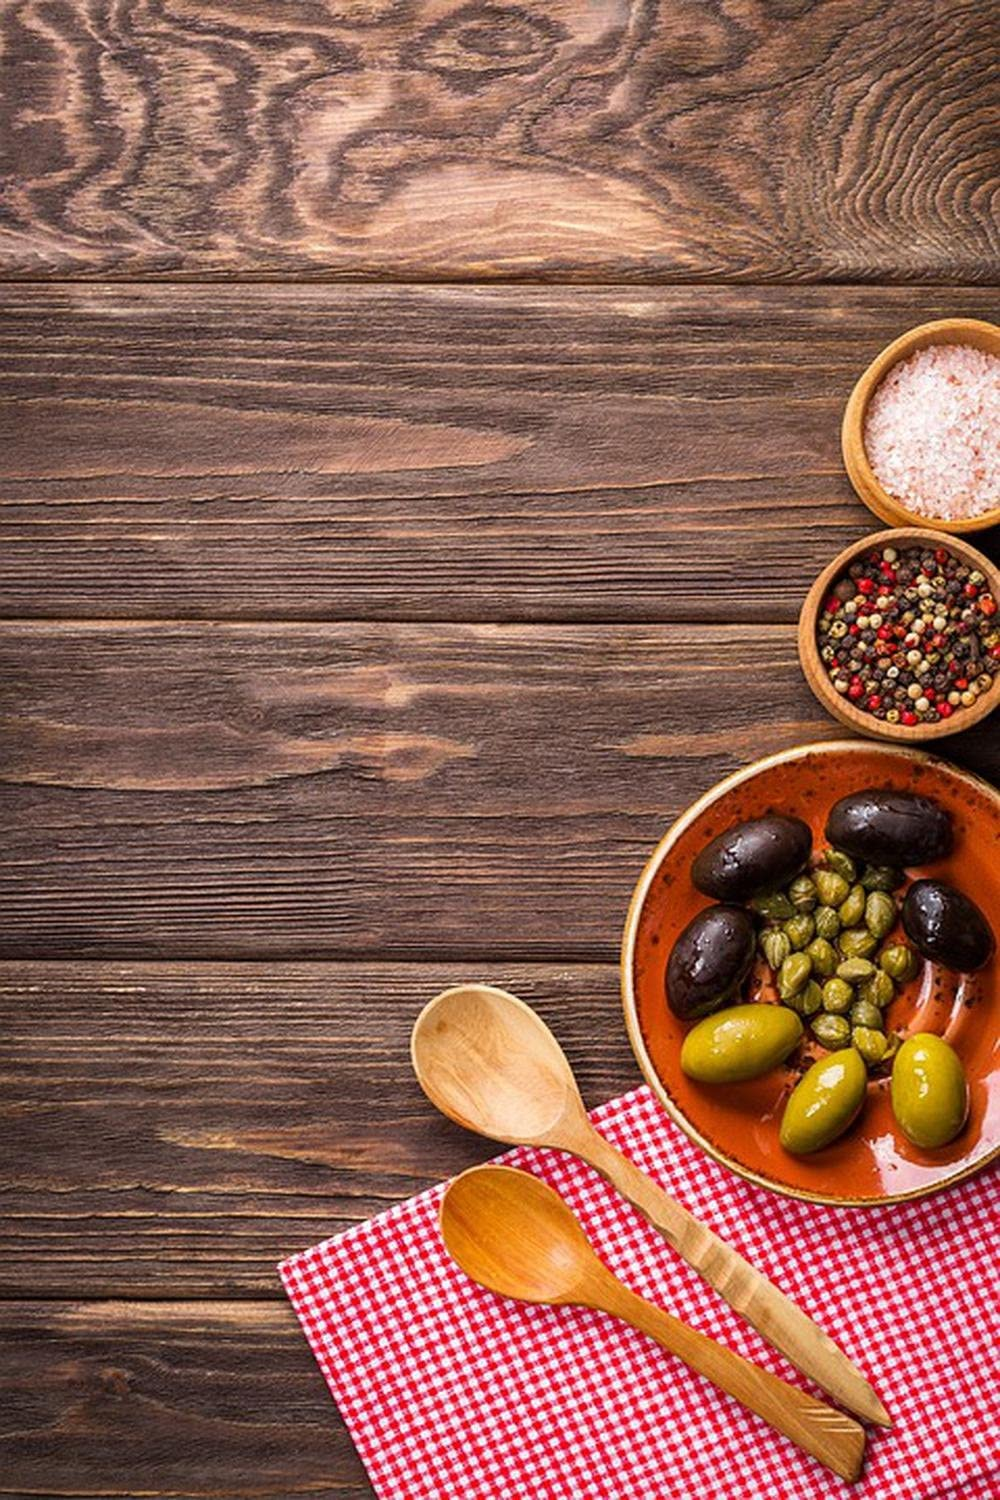 Laminated 24x36 inches Poster: Background Food Tasty Olives Wooden Background Cooking Plate Kitchen Gourmet Nutrition Dish Delicious Appetizer Gastronomy Dinner Salt Pepper Table Spices Spoons